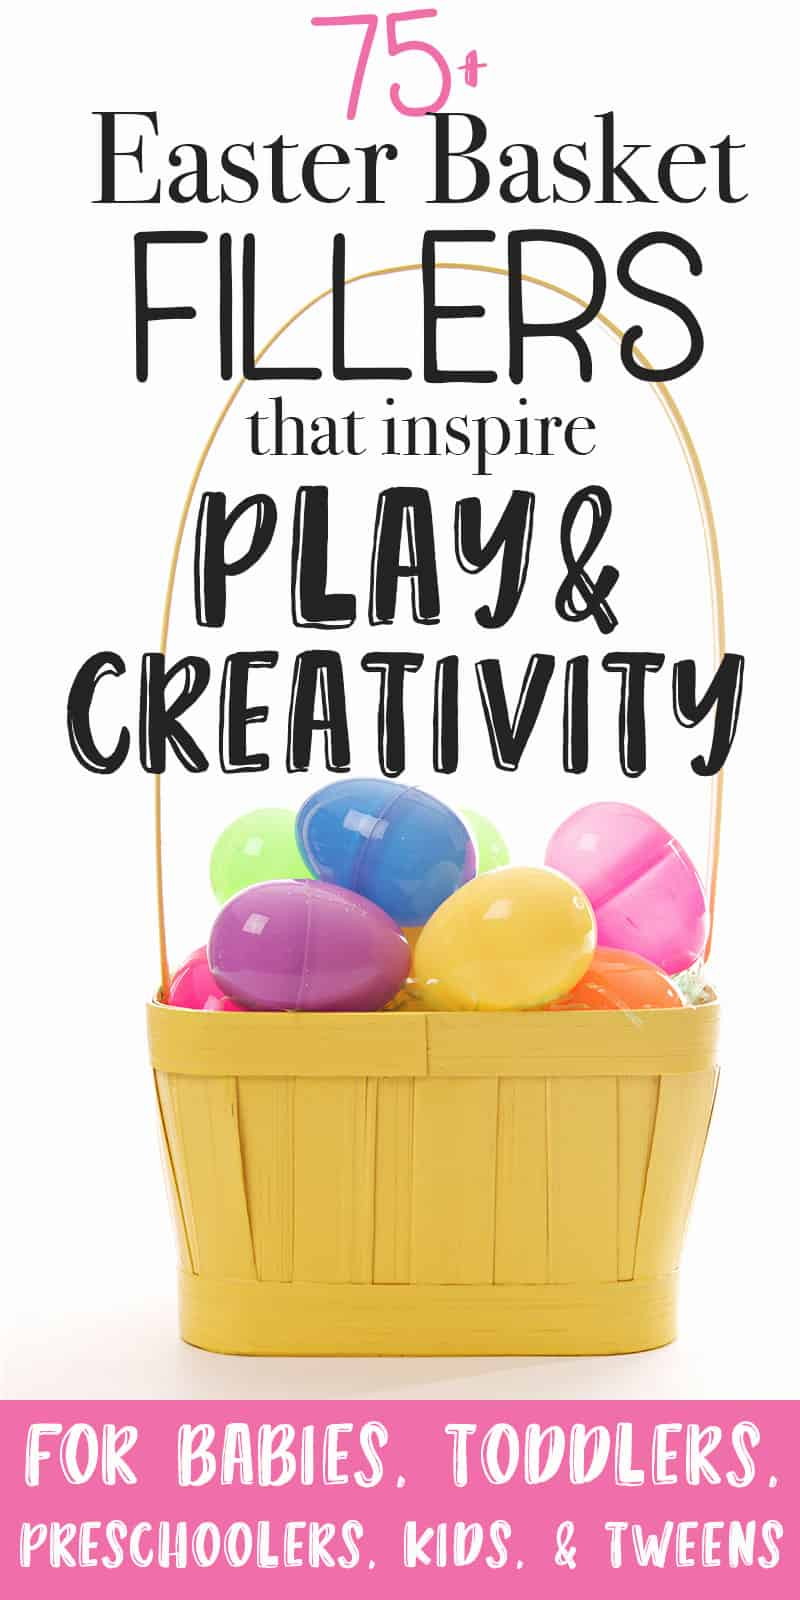 Easter basket fillers non-candy toys for kids that will encourage play and creativity.